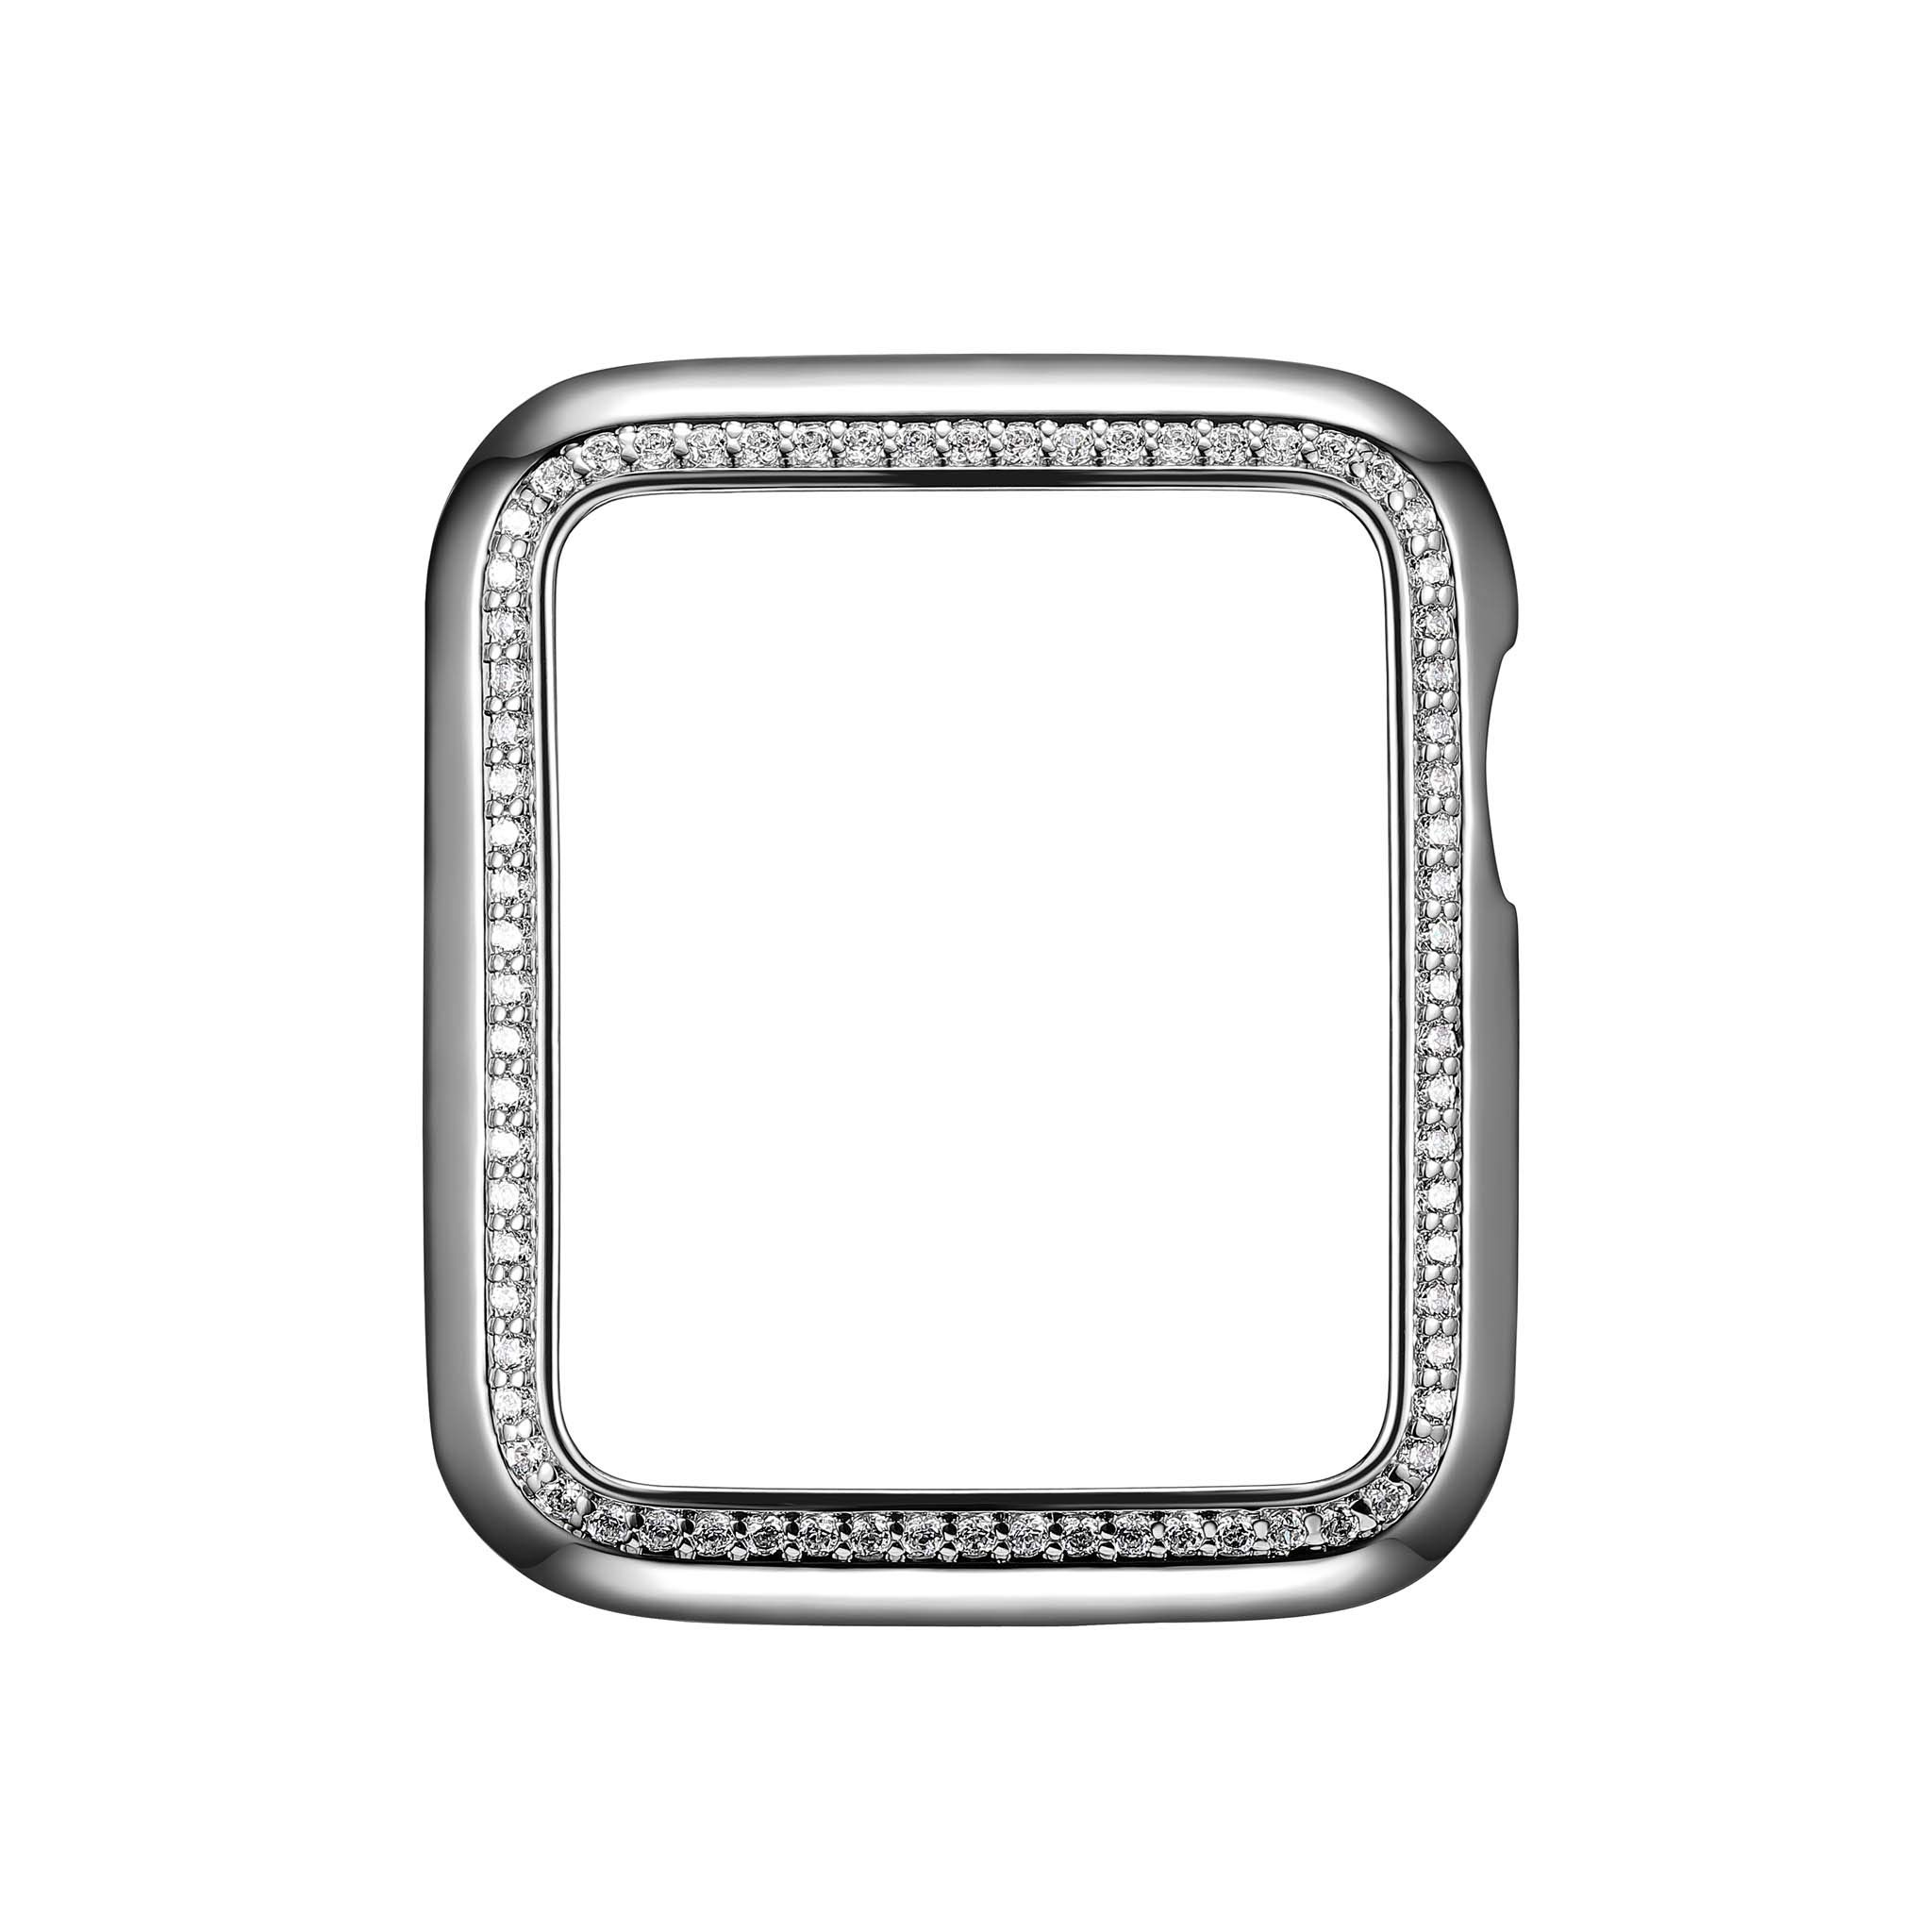 .925 Sterling Silver & Rhodium Plated Jewelry-Style Apple Watch Case with Swarovski Zirconia CZ Border - Small (Fits 38mm iWatch)